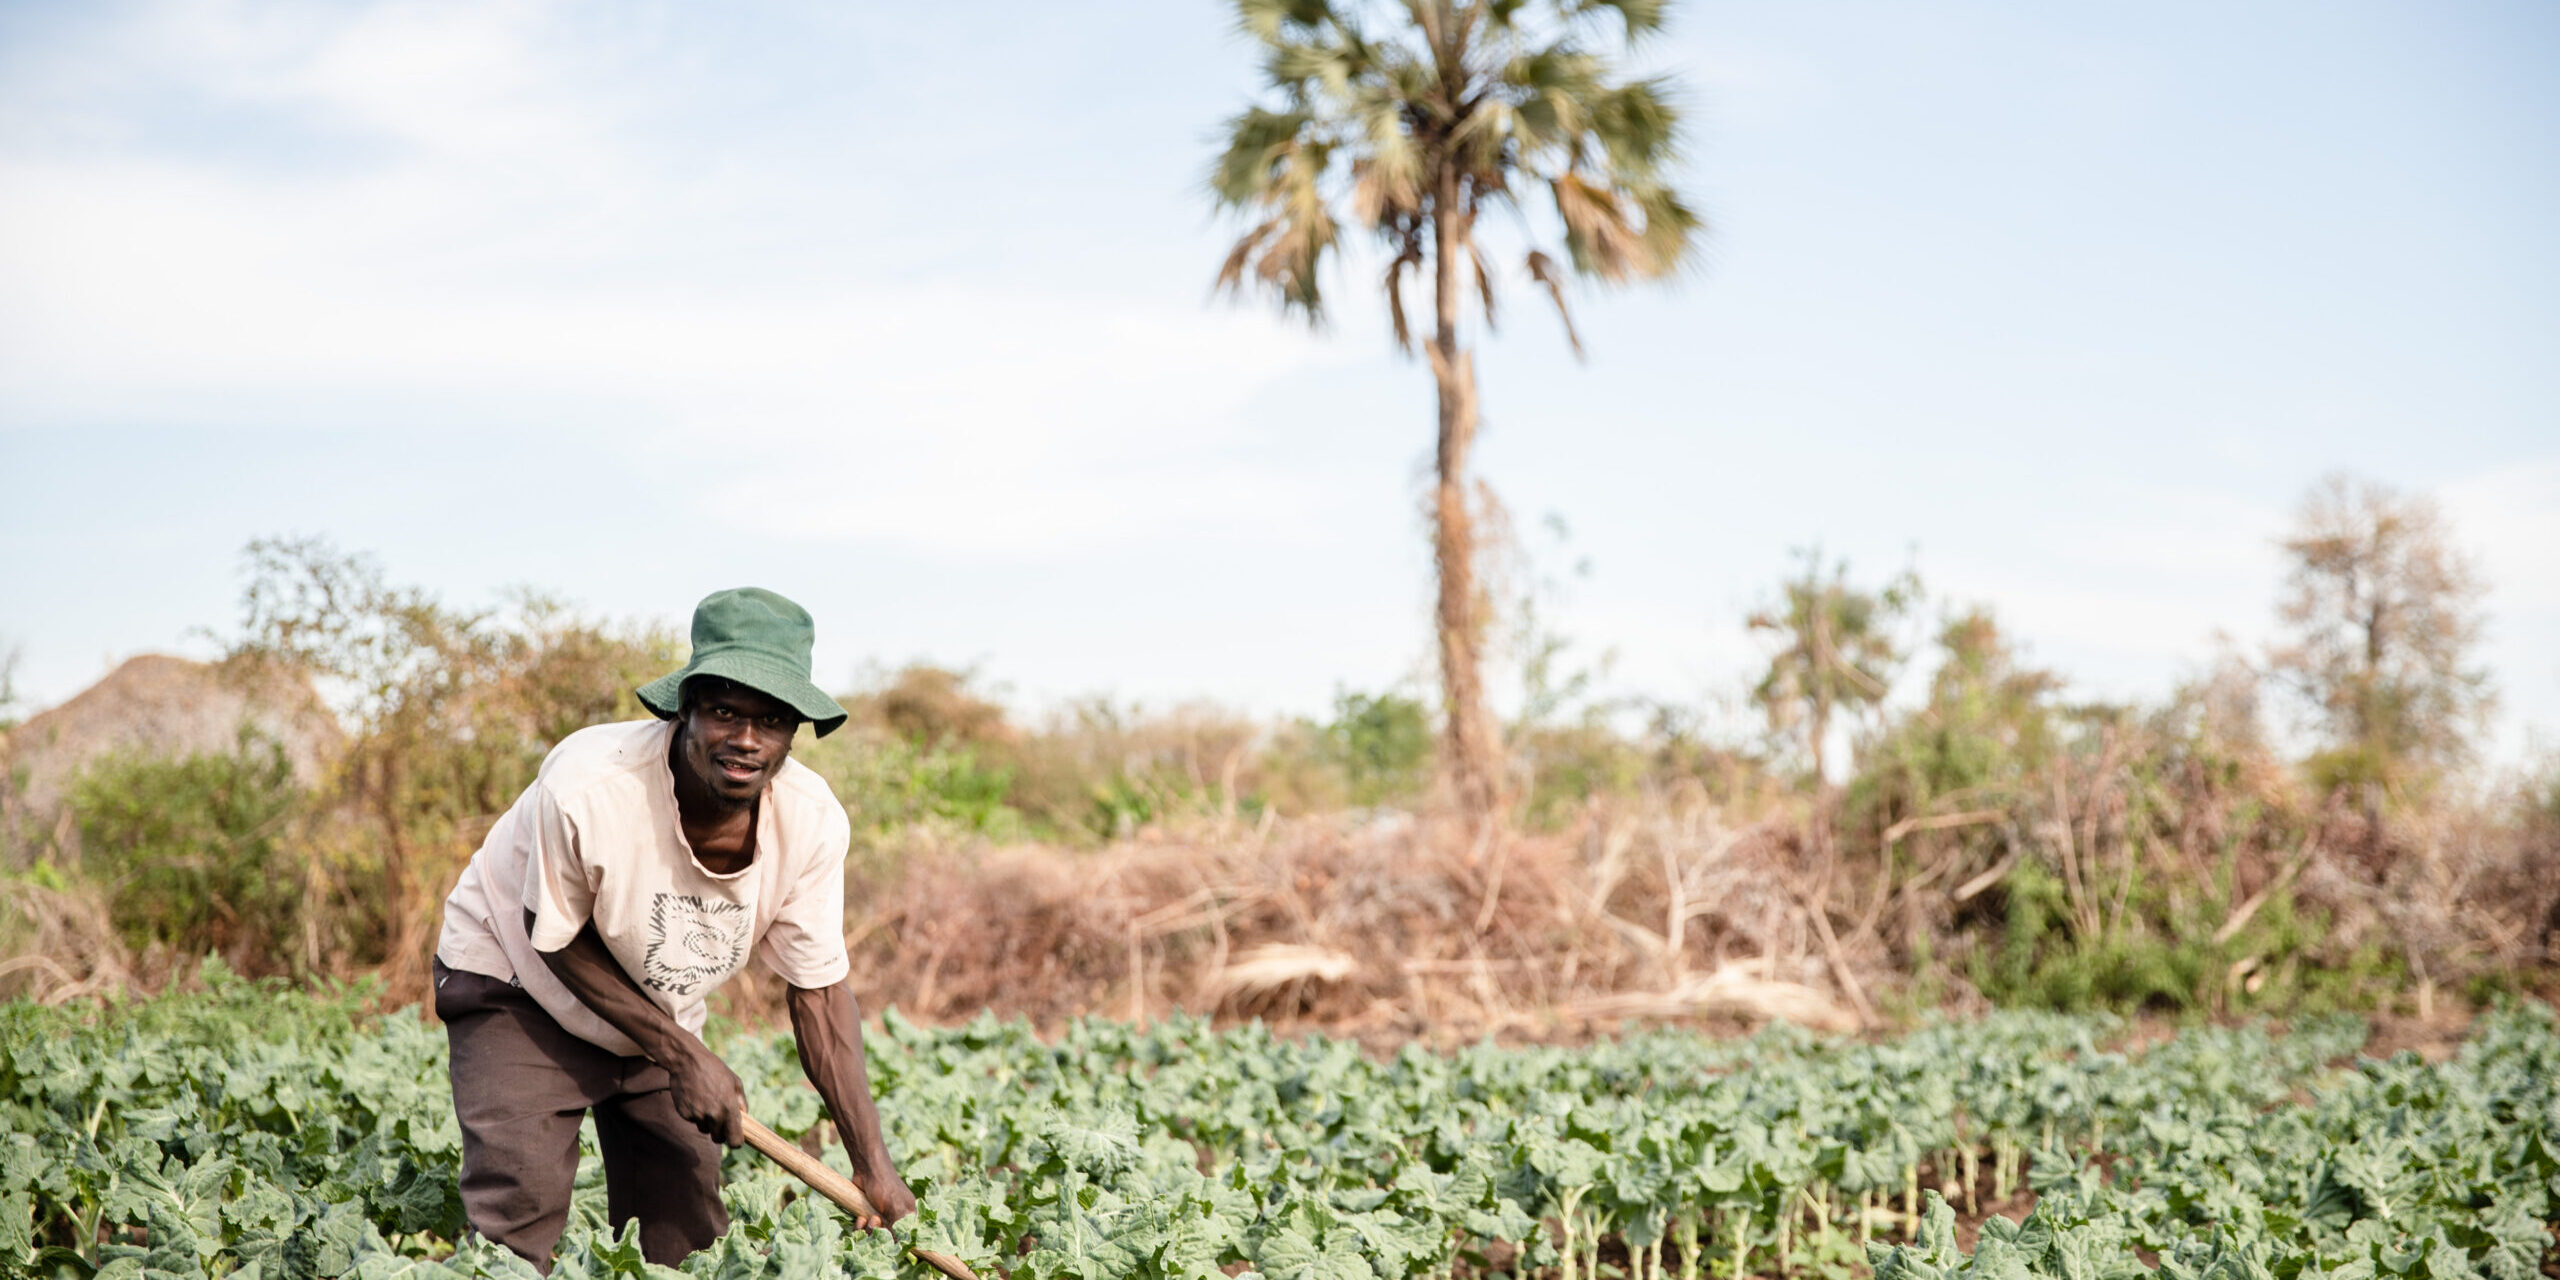 Volunteer of the Chiwenga water point. Two volunteers look after the place 24/7 and ensure that everything is working okay. They are allowed to cultivate vegetables in the area as a reward for their work. (Muzarabani district, Zimbabwe, 25.10.2018)